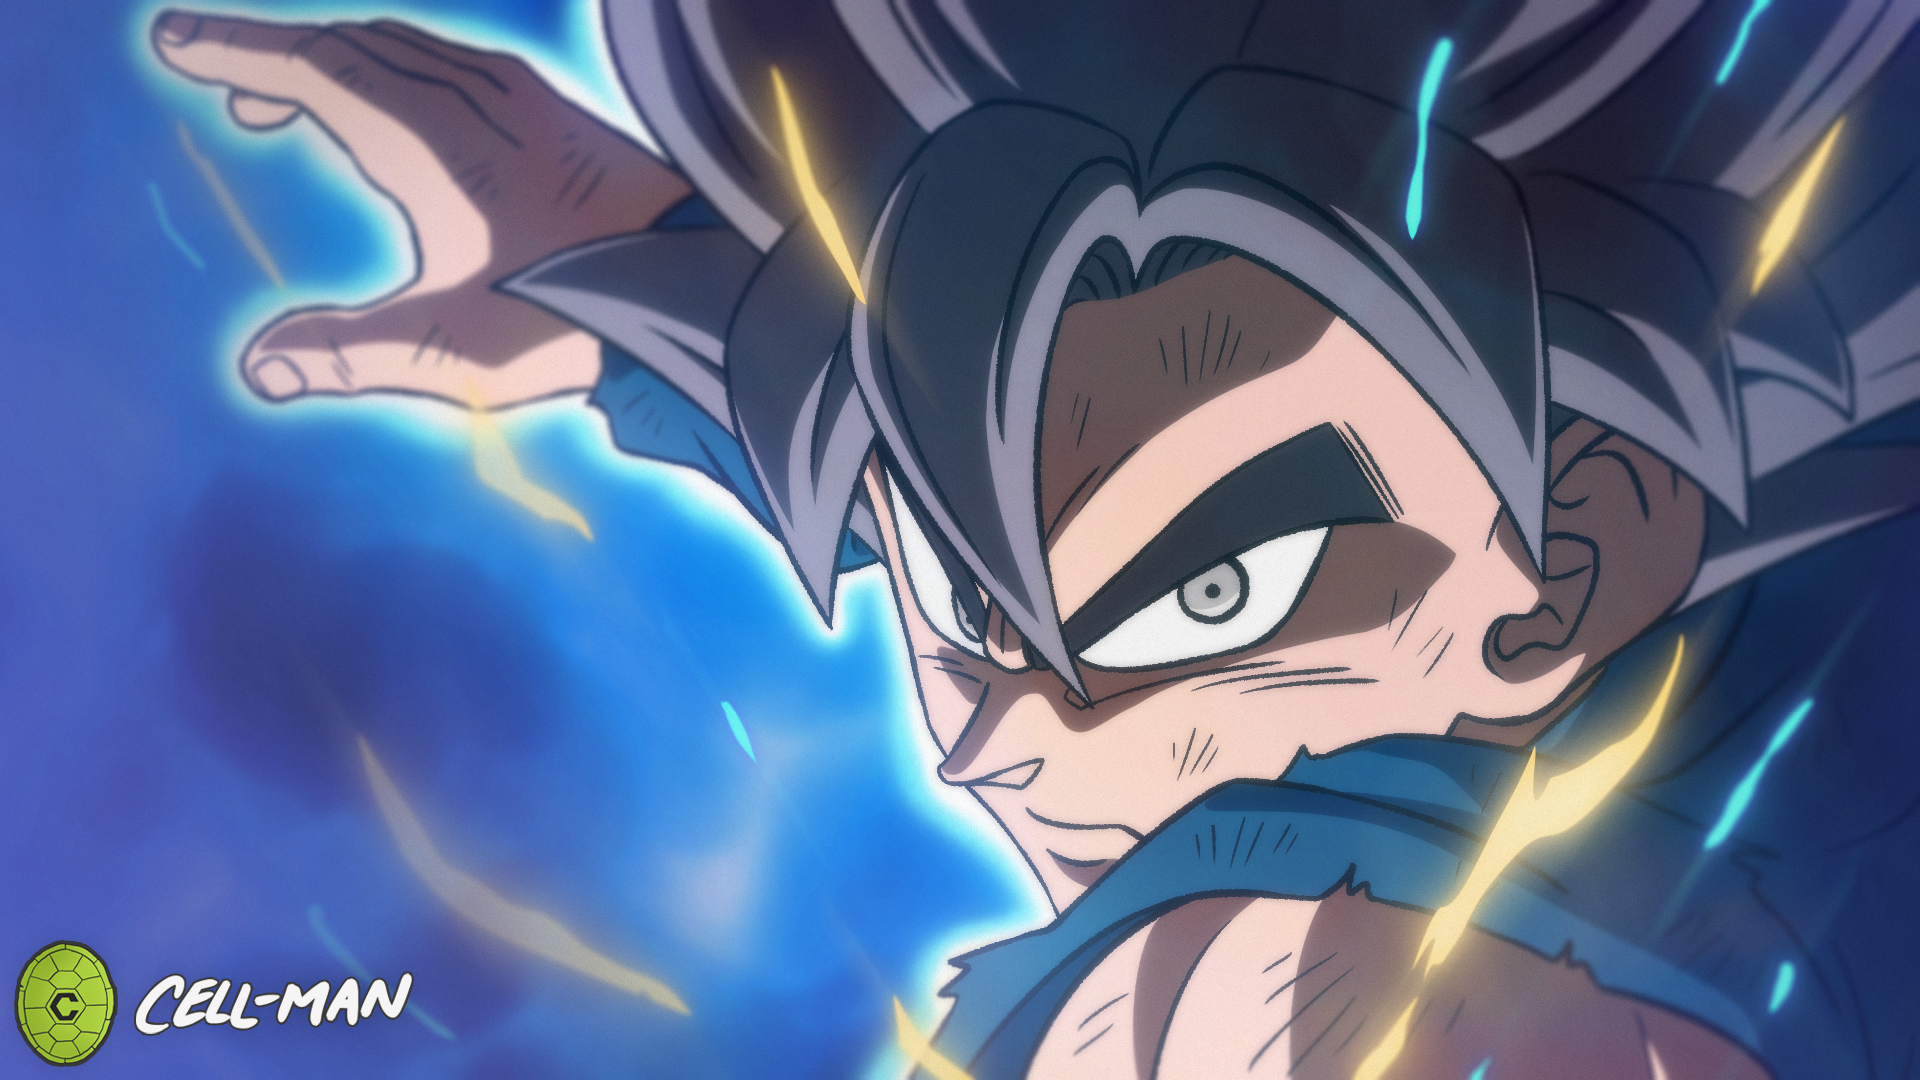 Goku In Broly Movie Hd Wallpaper Background Image 1920x1080